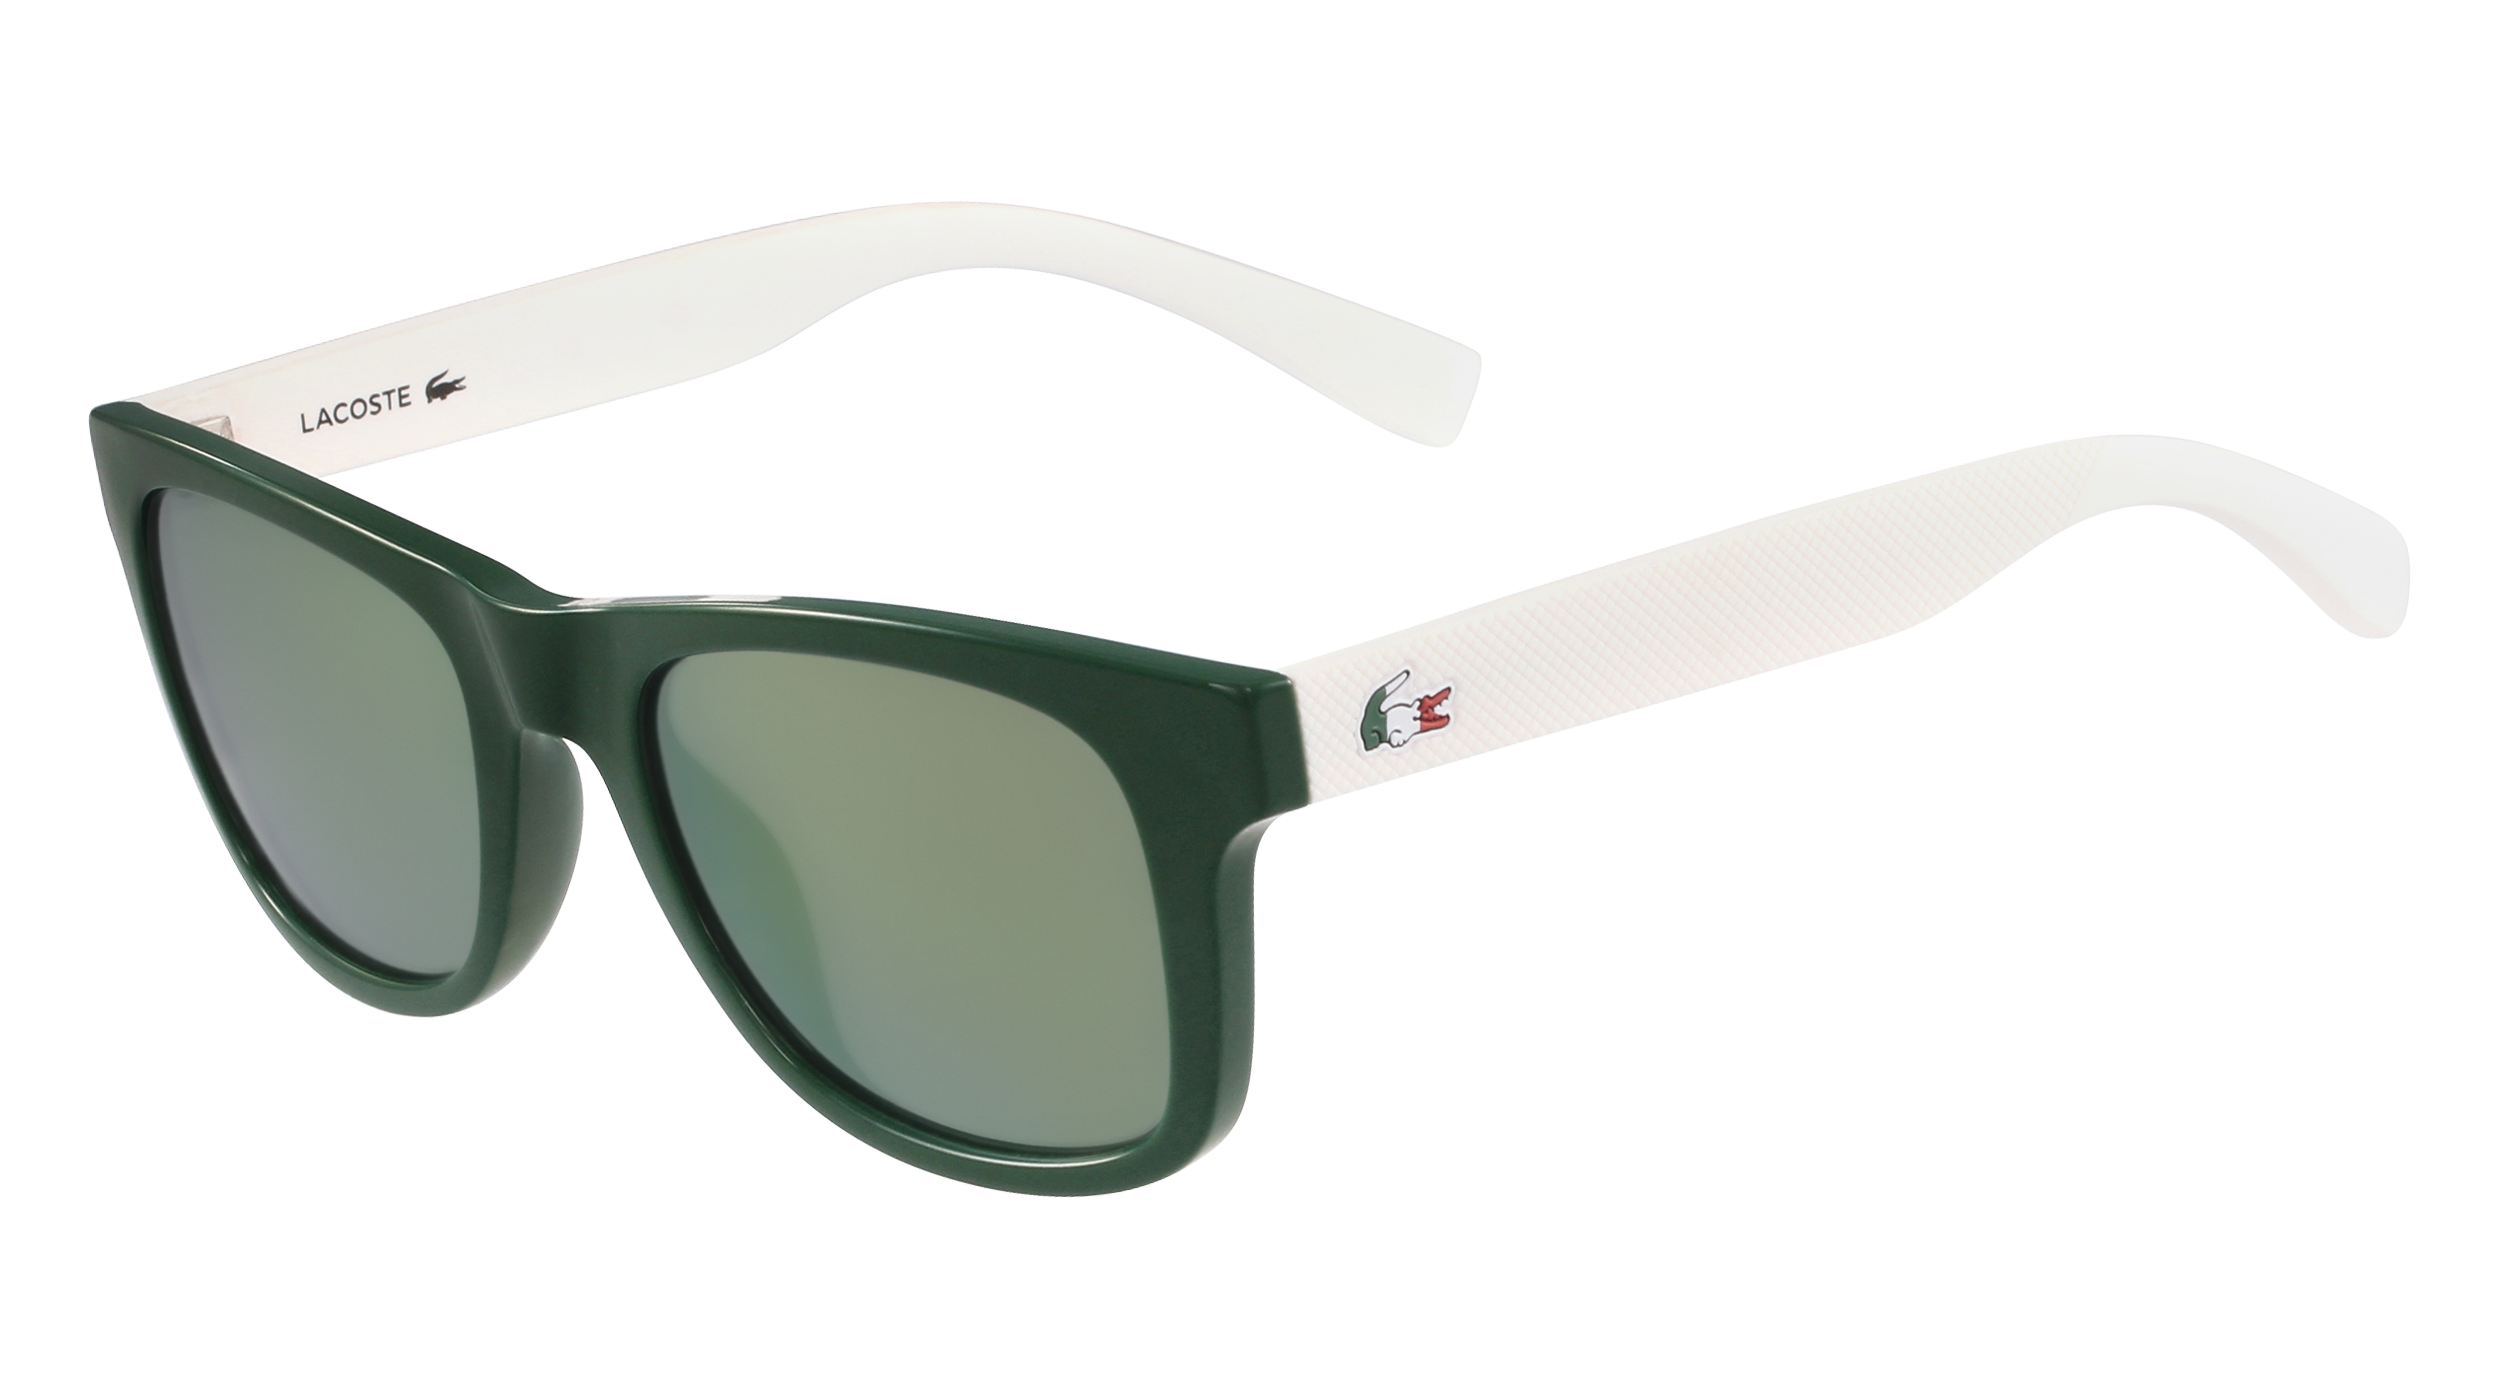 Lacoste L790SOG-S-318-52-20-140